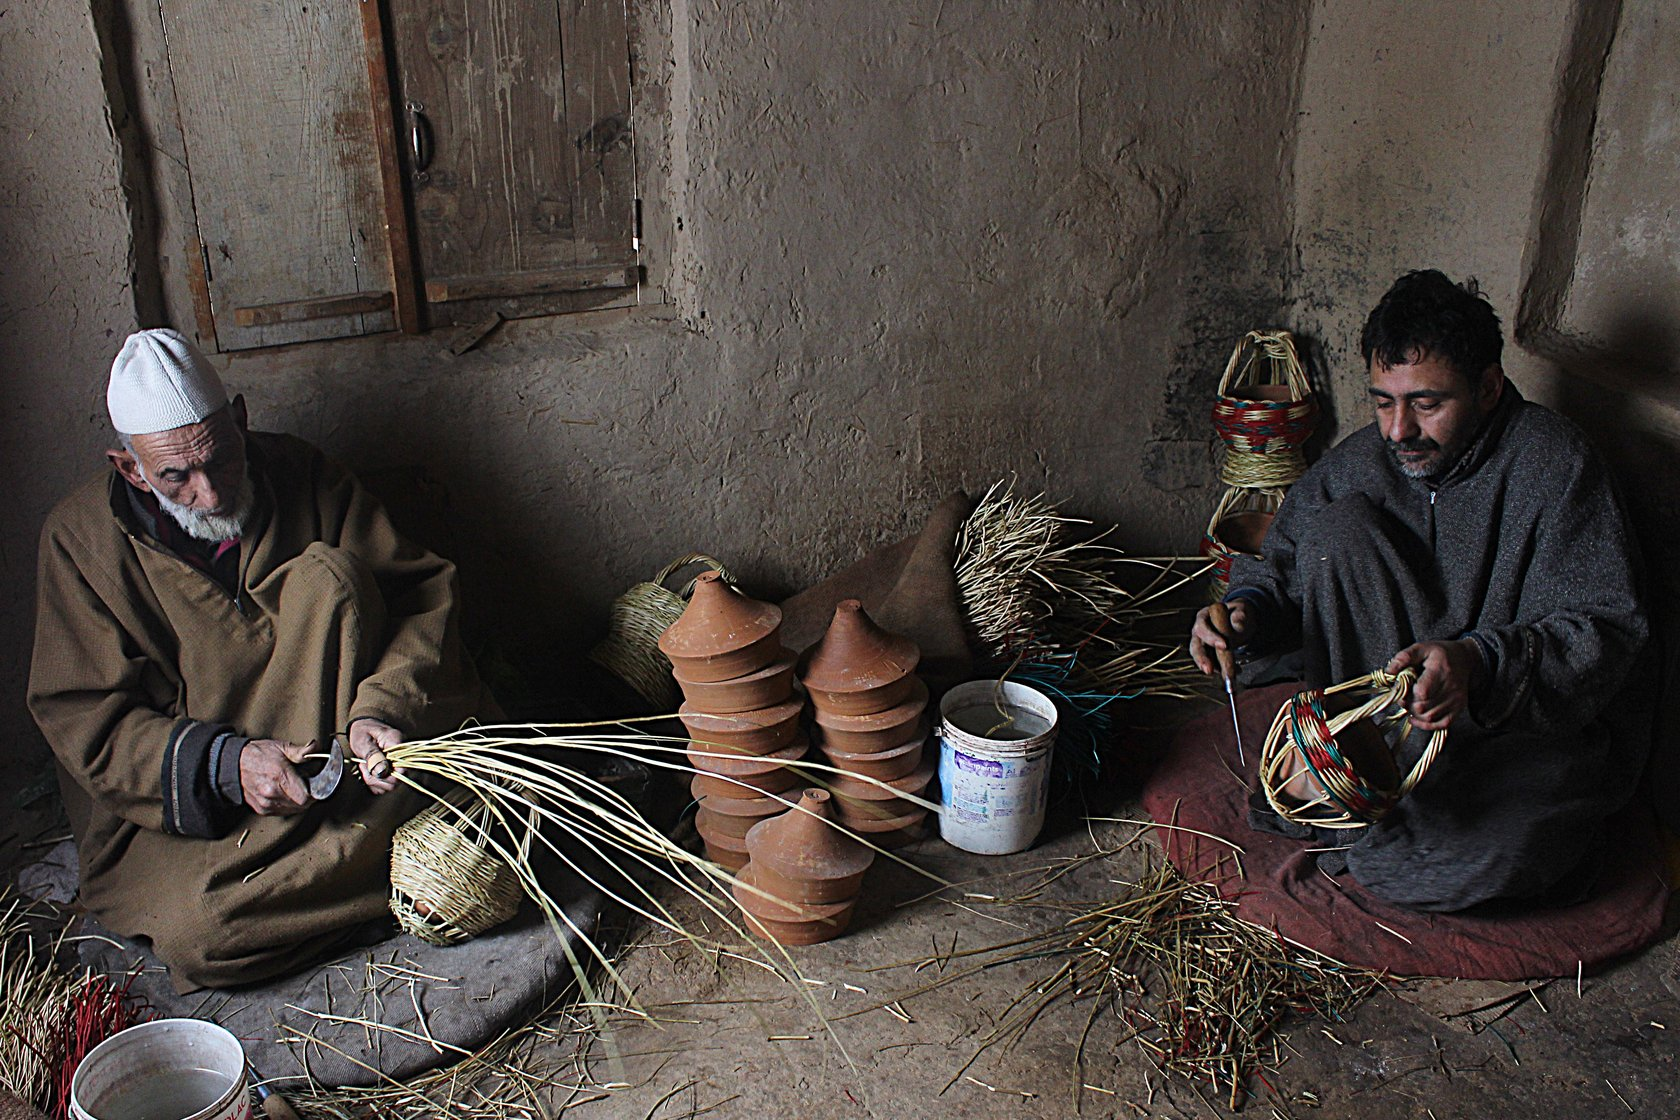 Khazir Mohammad Malik, along with Manzoor Ahmad, weaving kangris at his workshop in Charar-i-Sharief